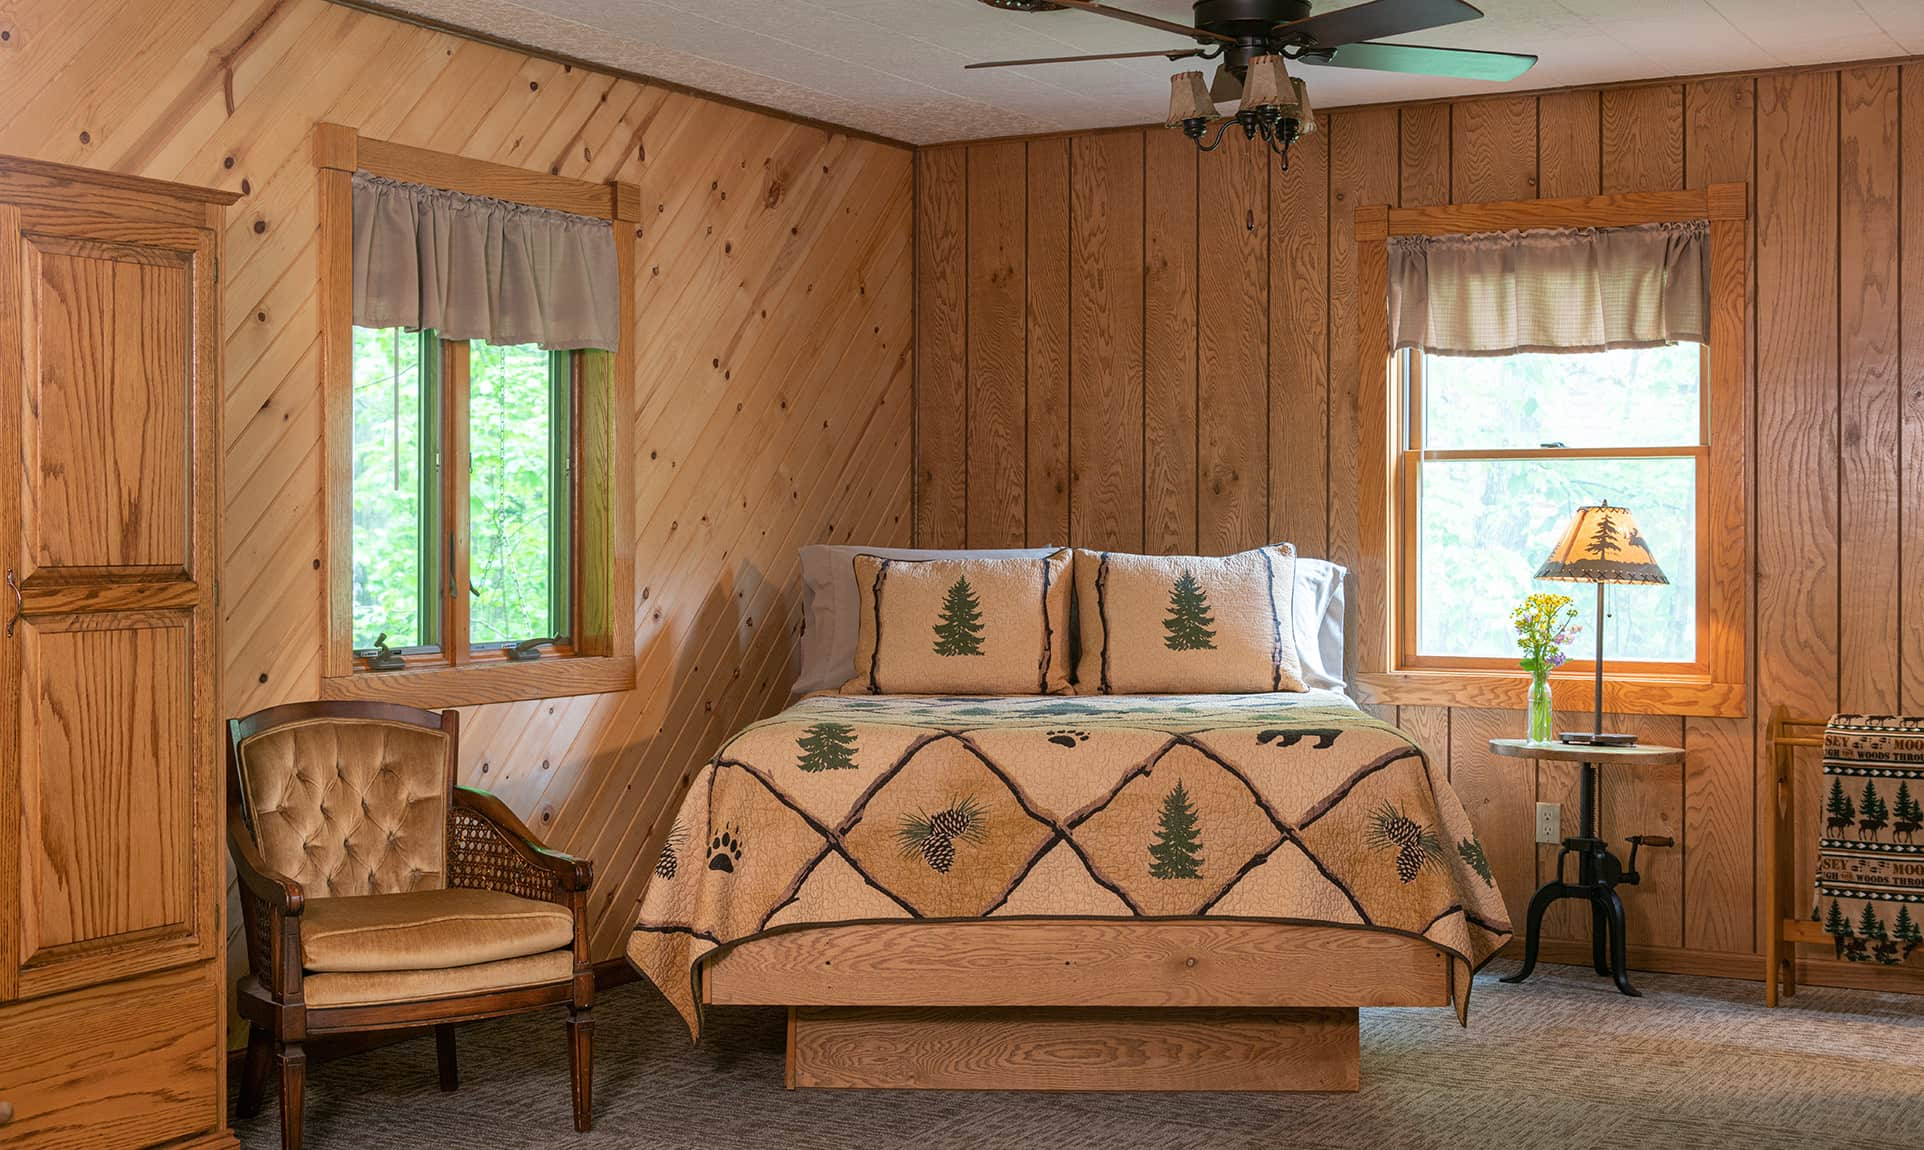 Chippewa Cabin bed - romantic Starved Rock, Illinois lodging